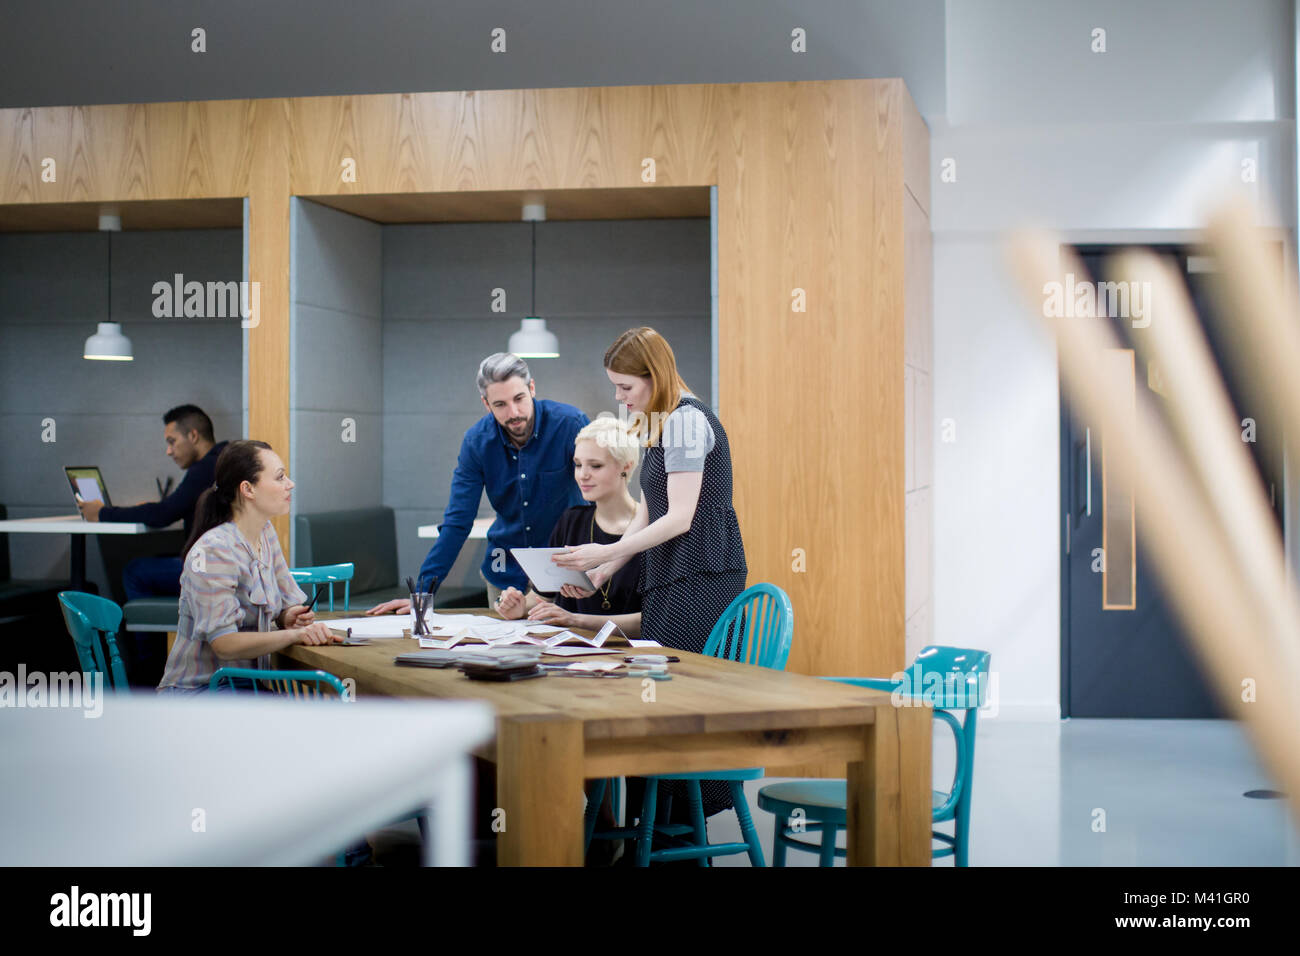 Group of coworkers discussing a project - Stock Image